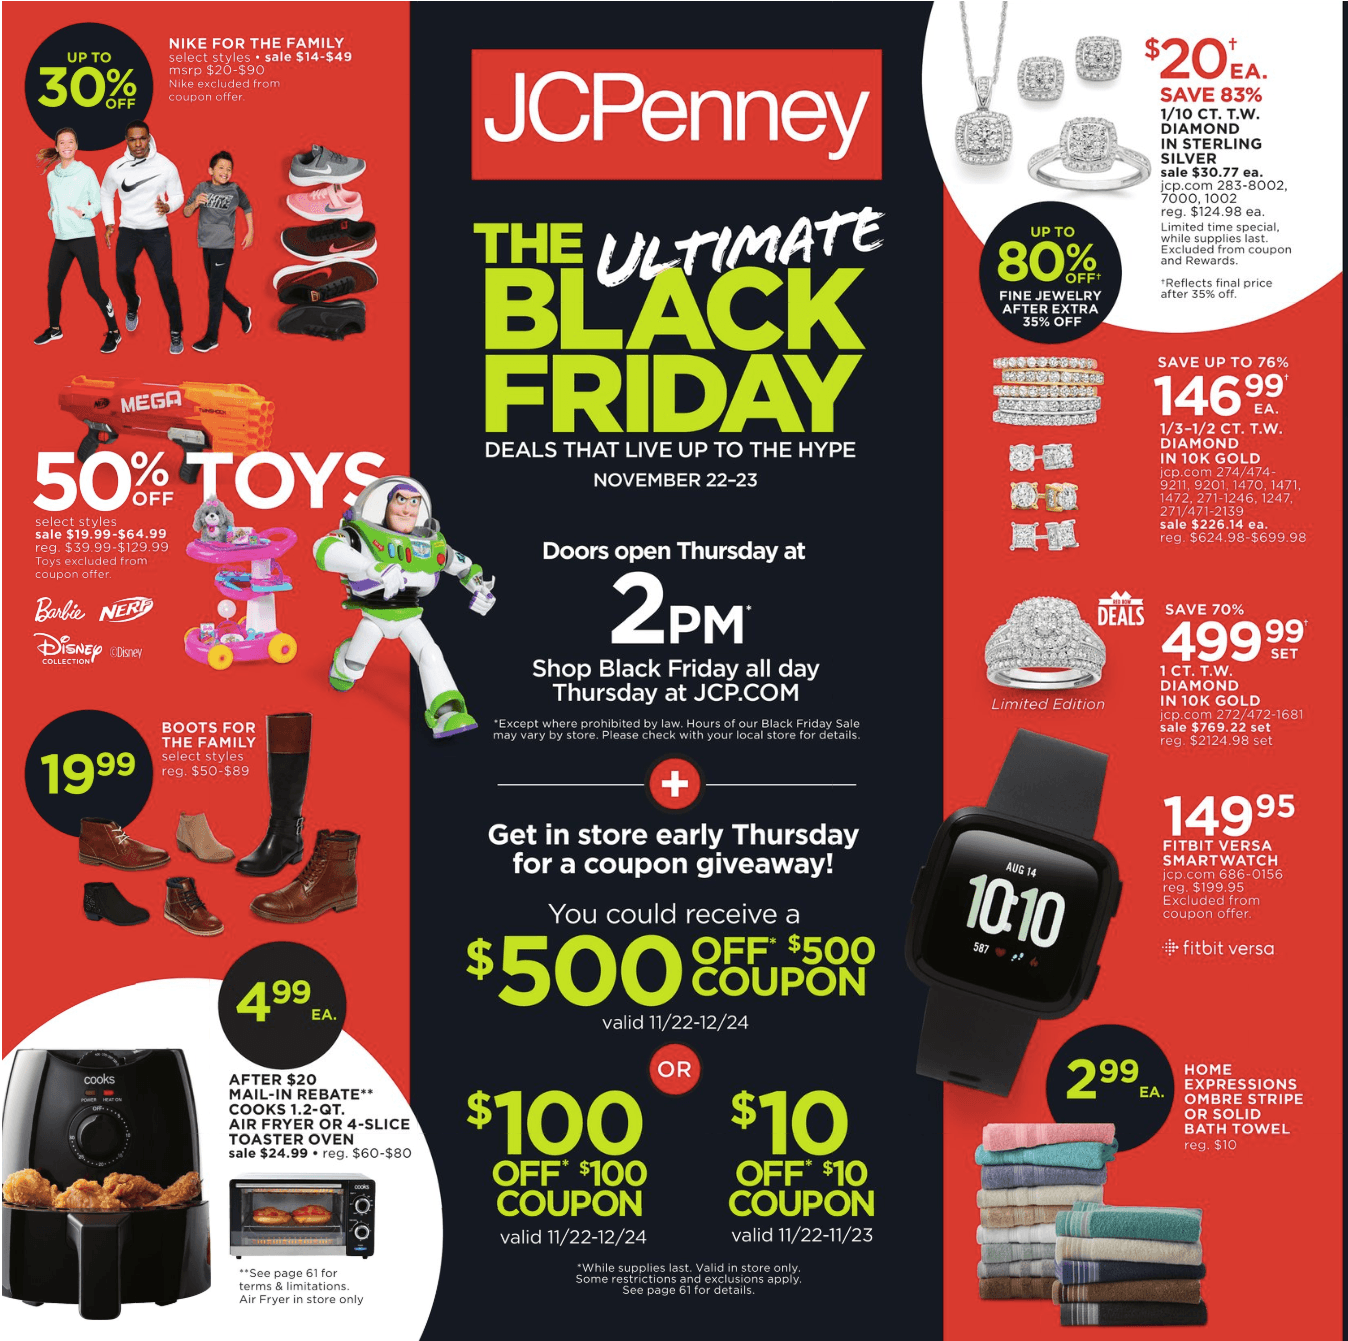 0e09104e8b1 JCPenney Black Friday 2018 Page 1